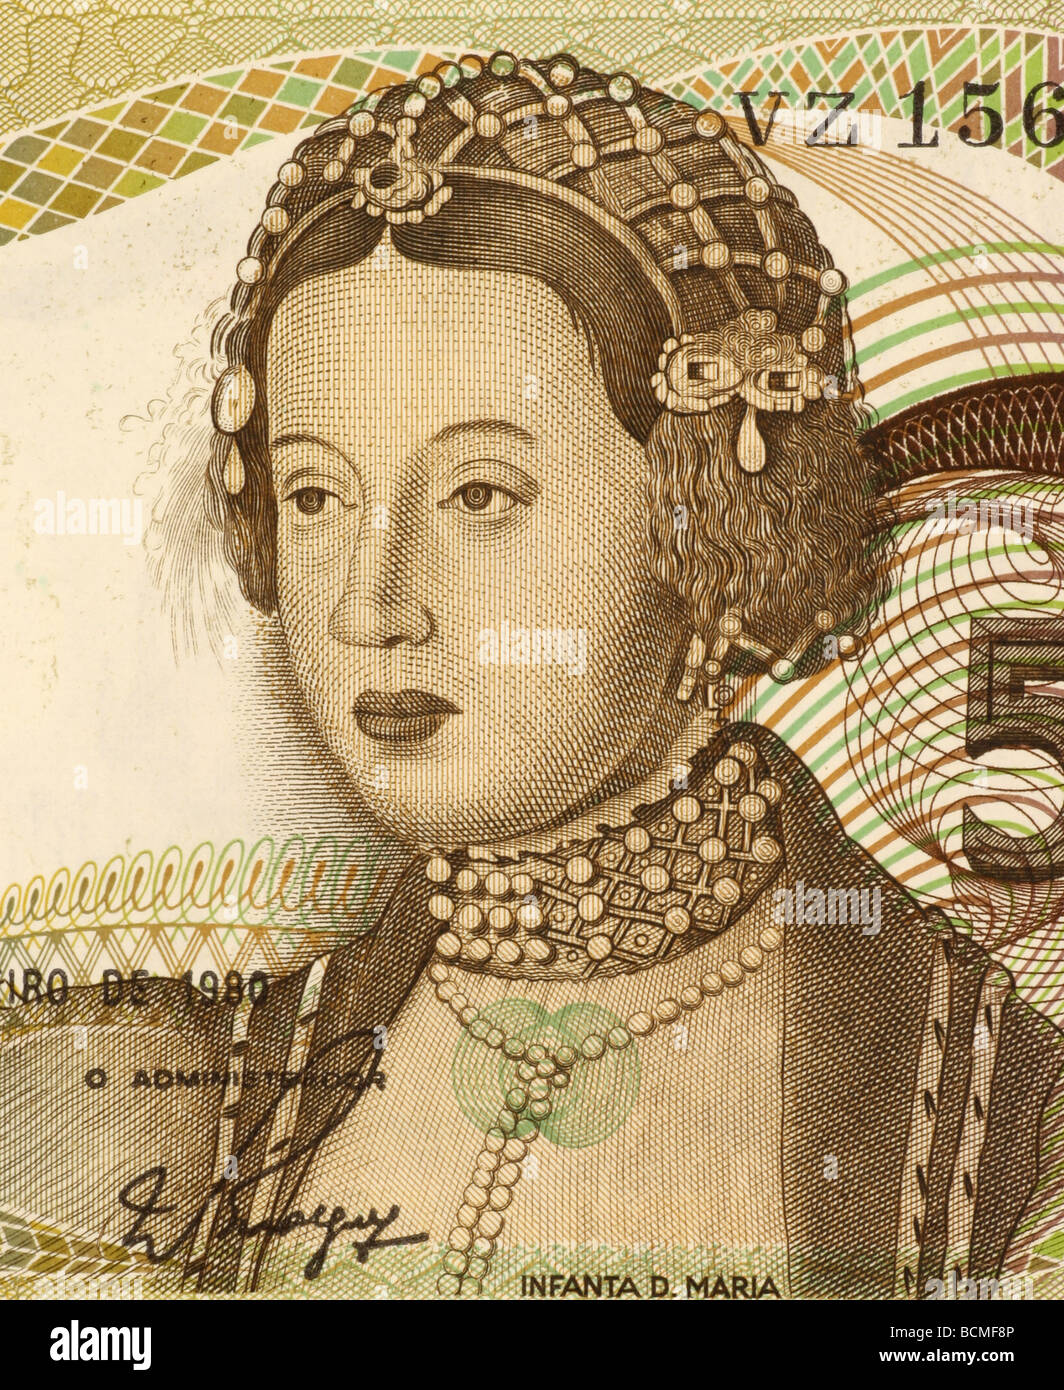 Dona Maria on 50 Escudos 1980 Banknote from Portugal Stock Photo